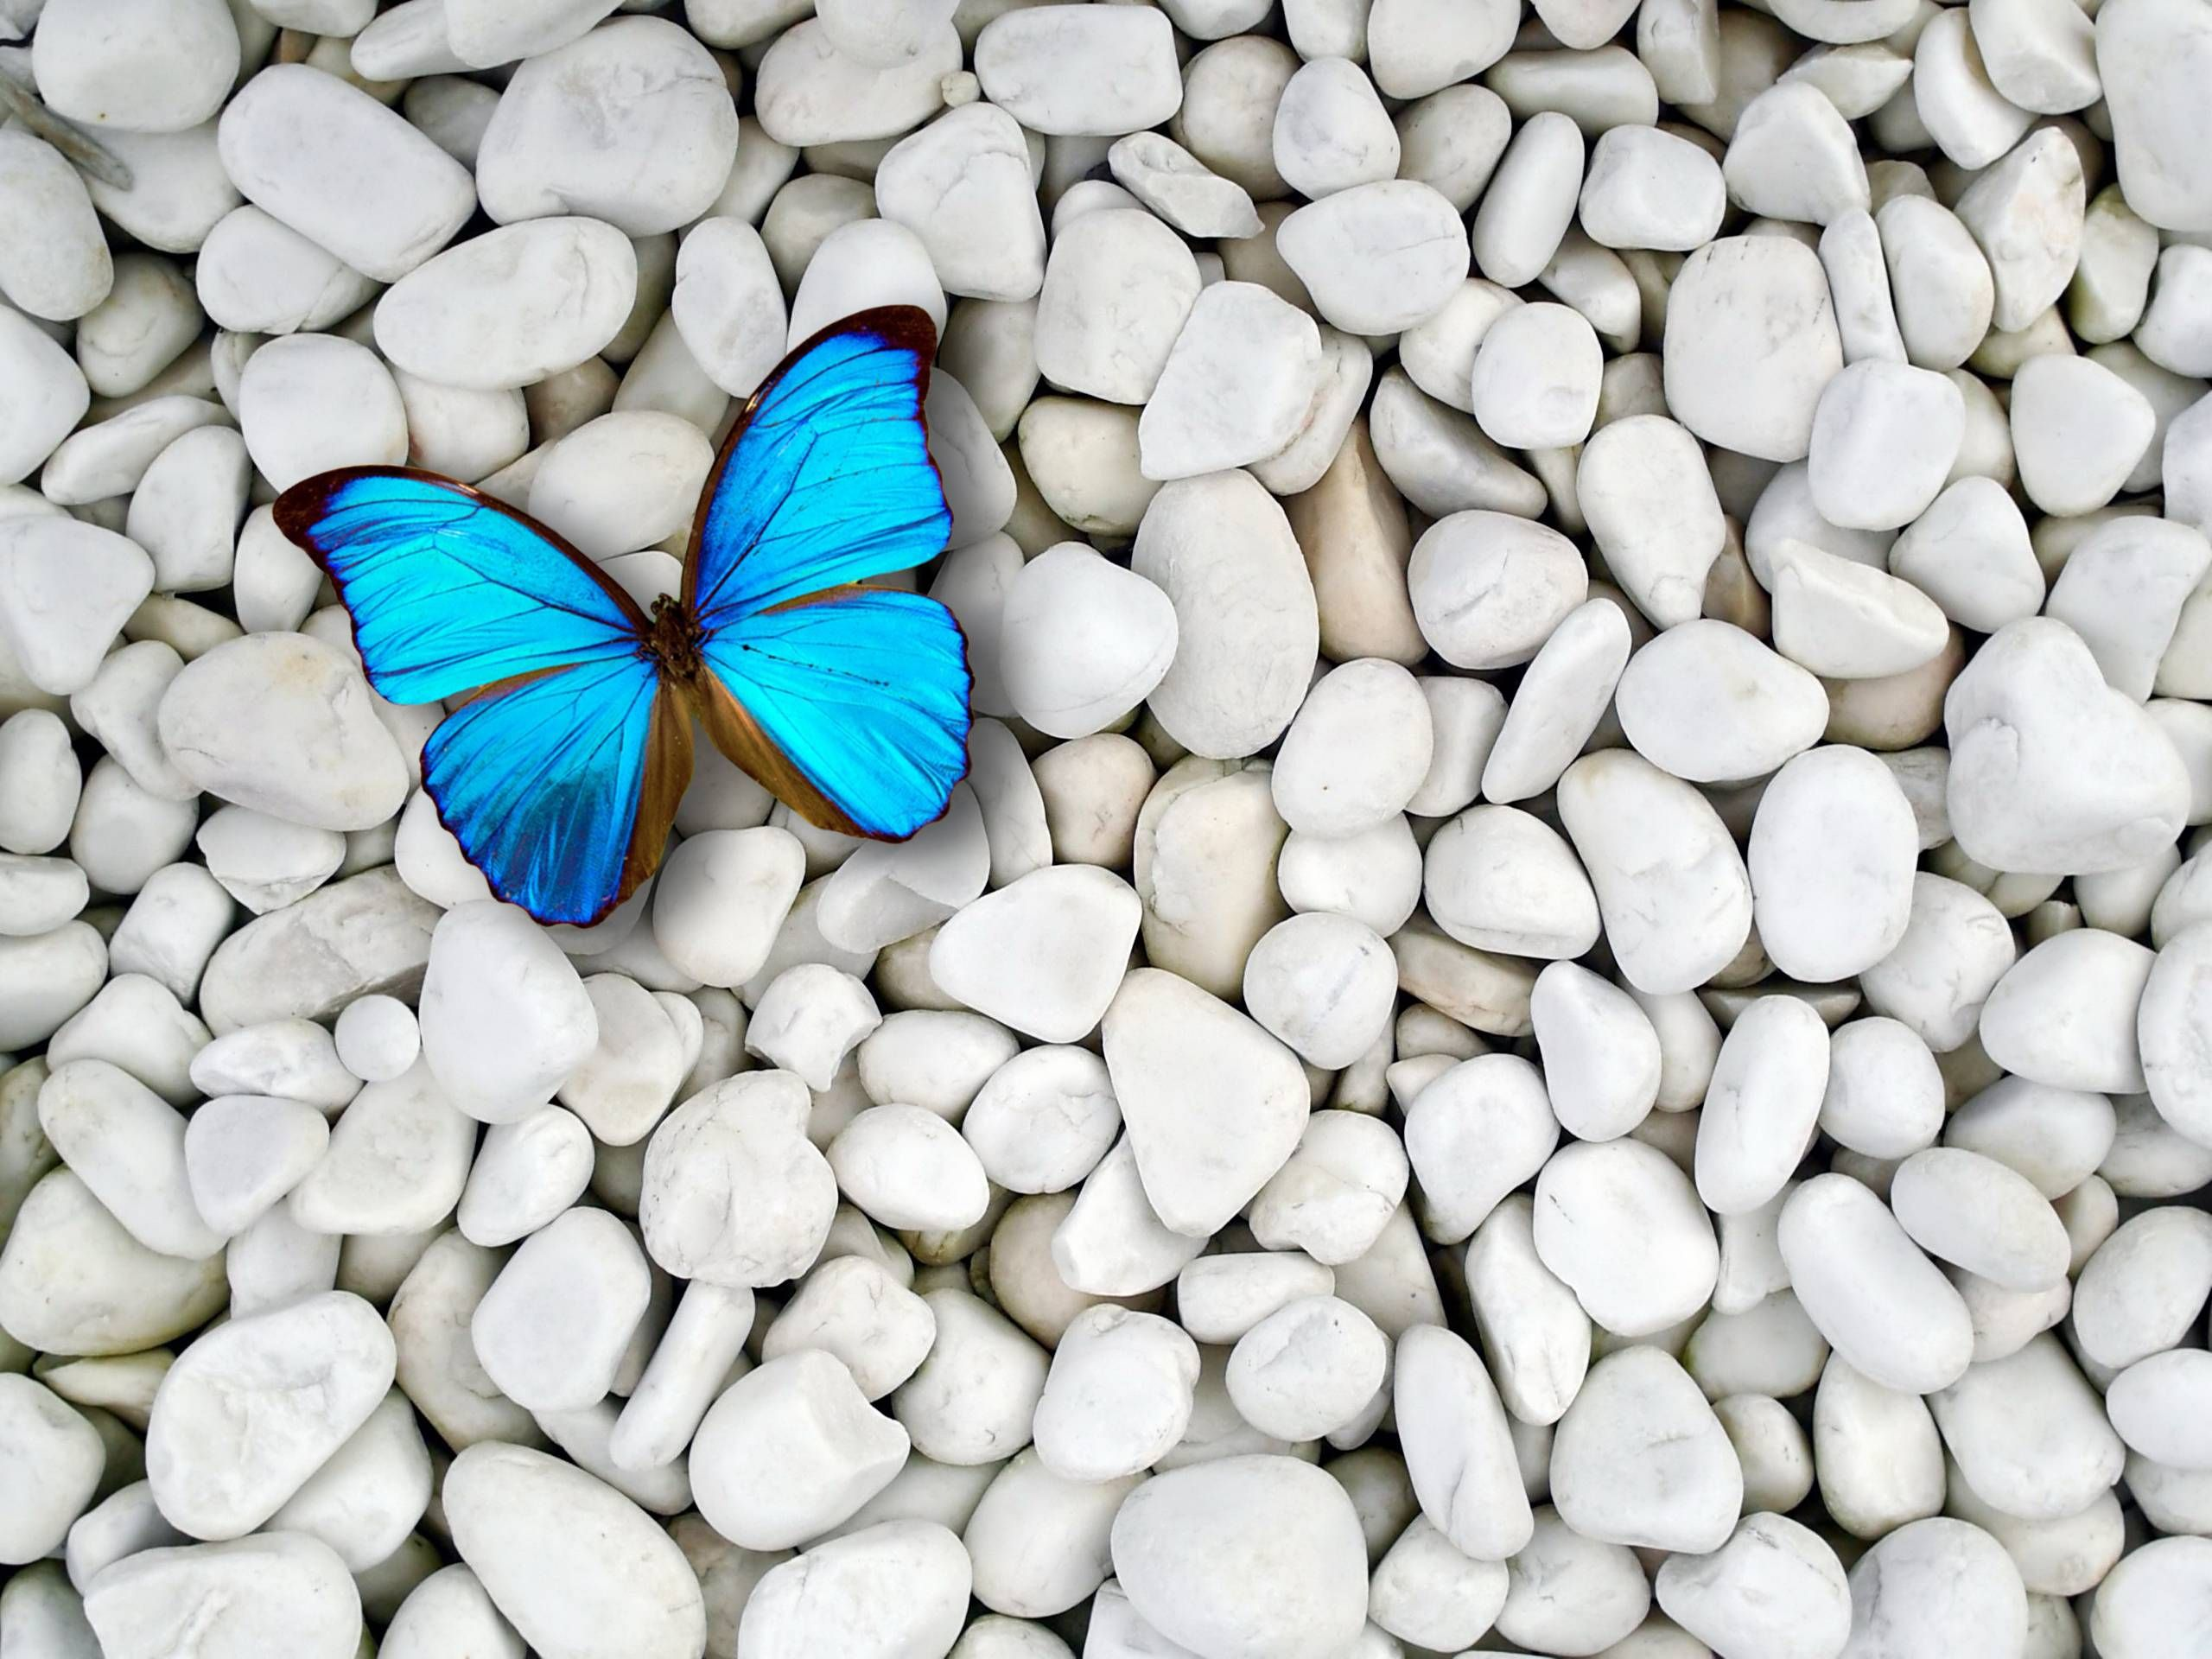 Blue Butterfly Wallpapers Blue Butterfly Wallpaper Butterfly Wallpaper Butterfly Wallpaper Backgrounds